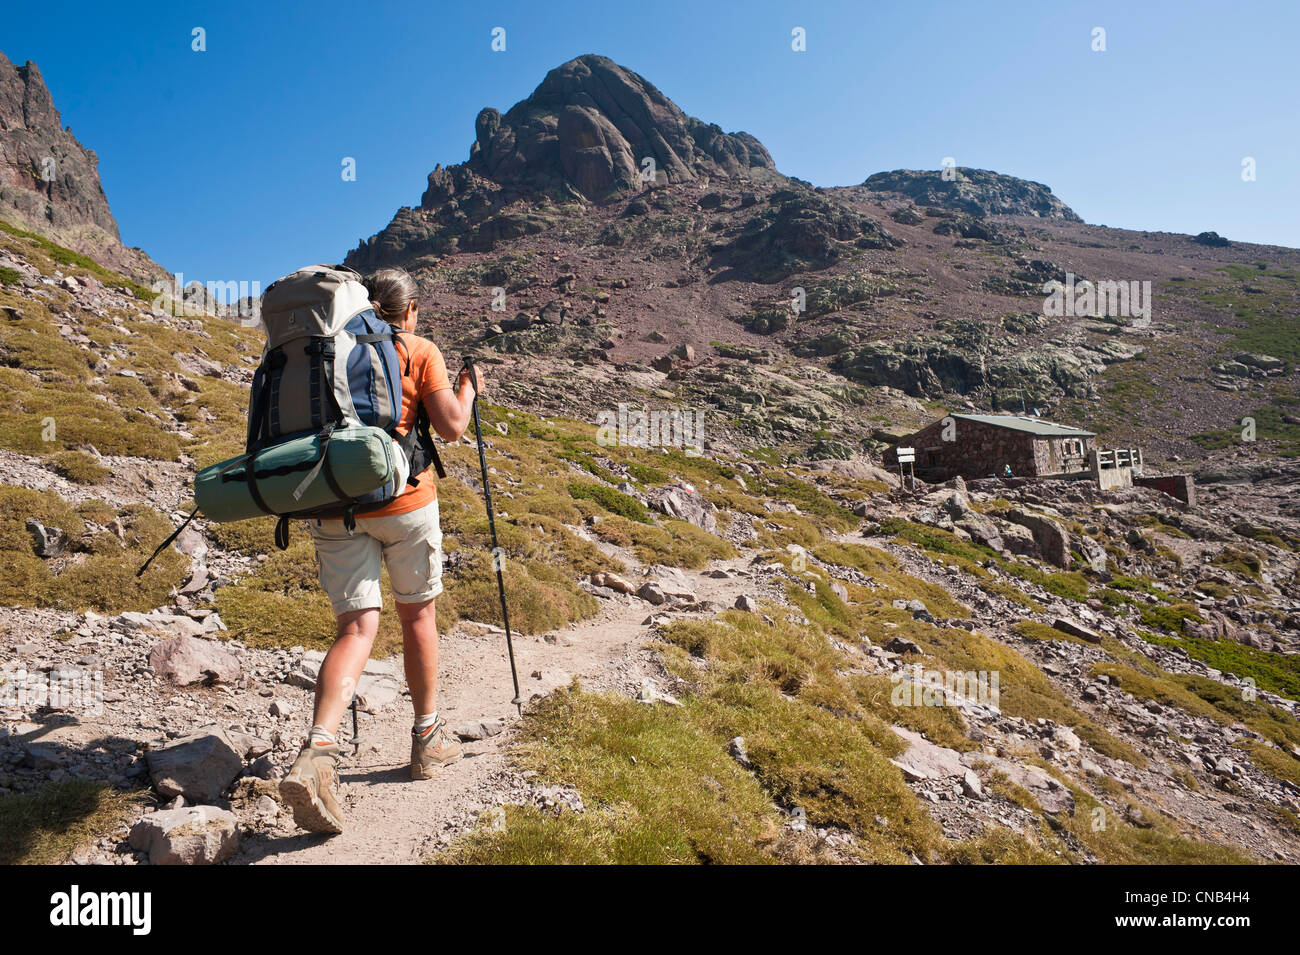 France Haute Corse Hiking On The GR 20 Between Castel Di Verghio And